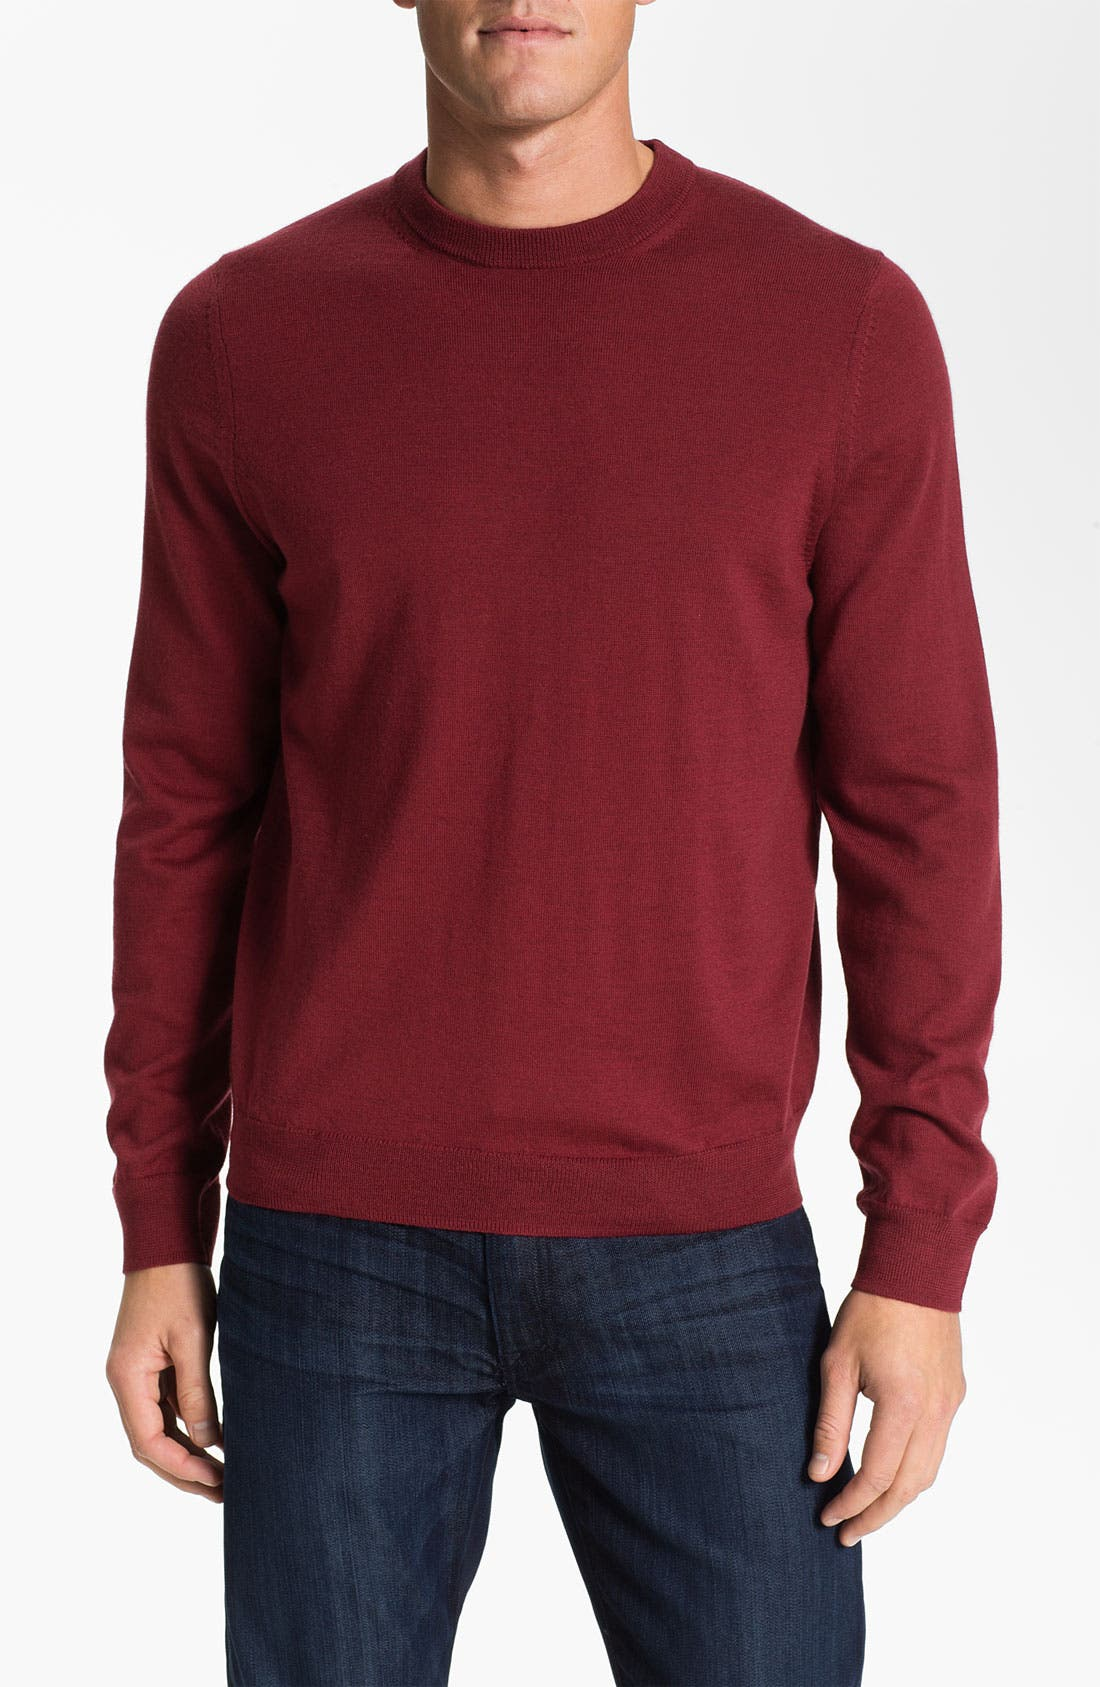 Alternate Image 1 Selected - Nordstrom Traditional Fit Merino Wool Crewneck Sweater